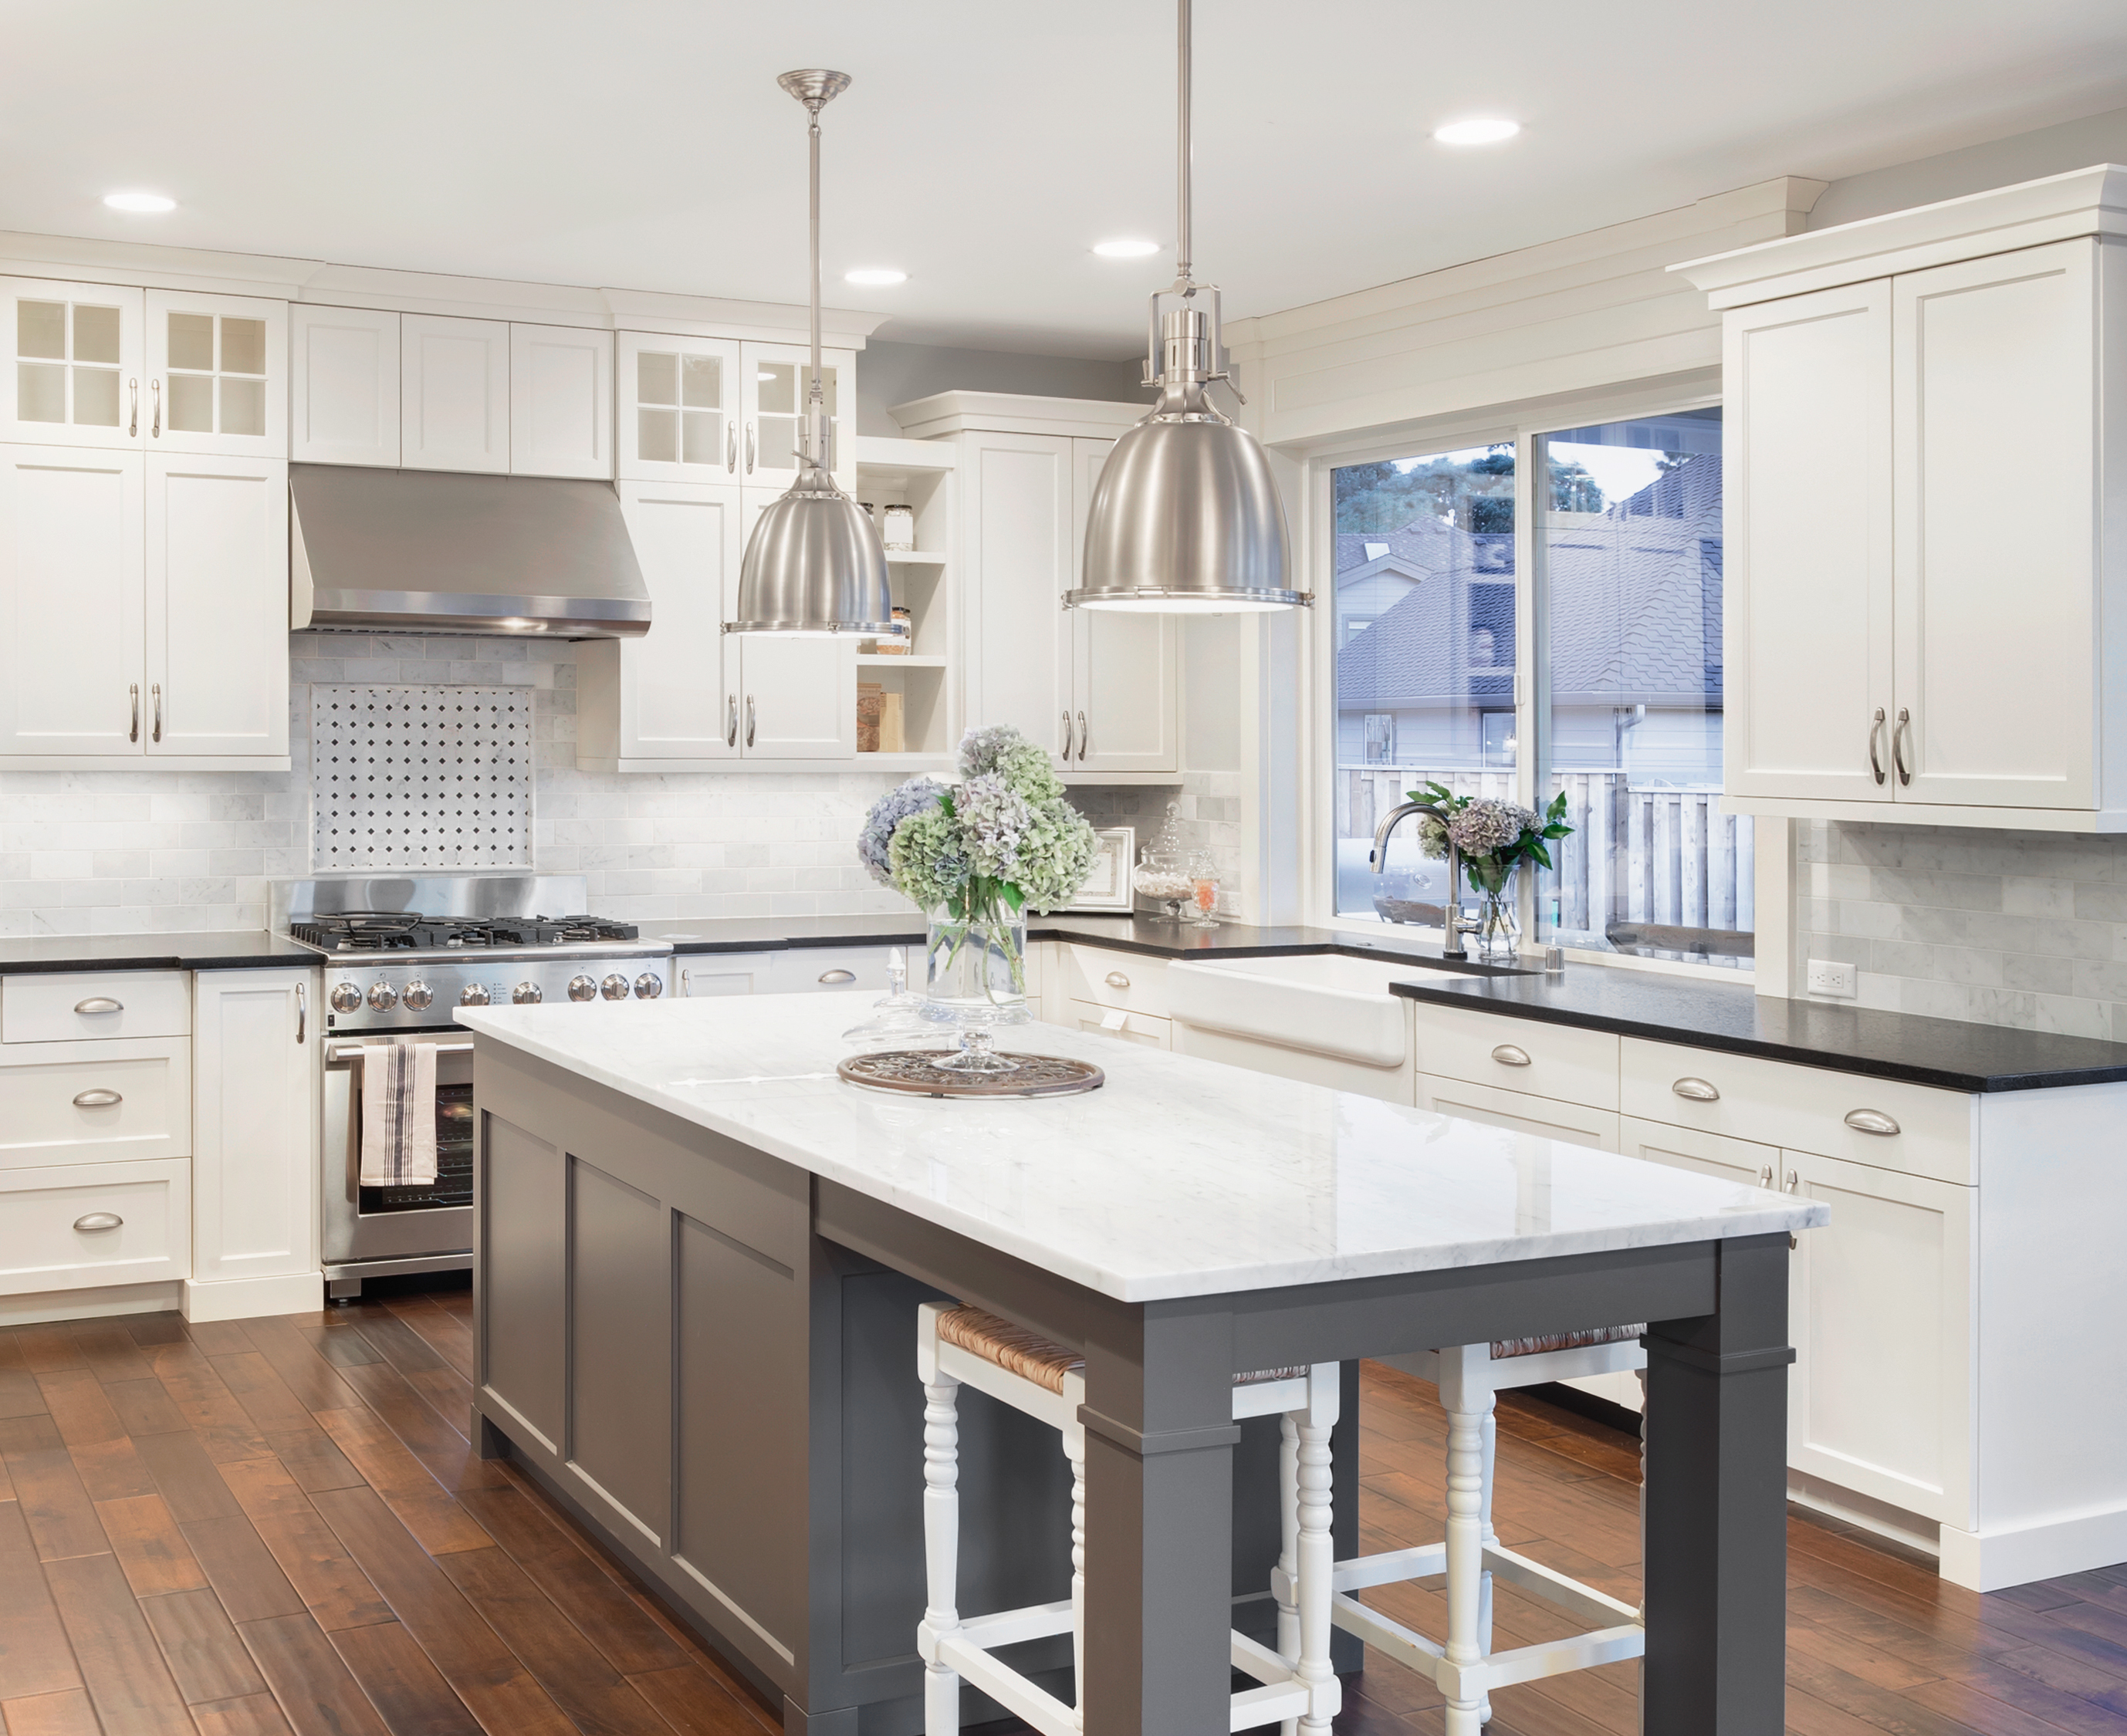 beautiful kitchen in luxury home with island